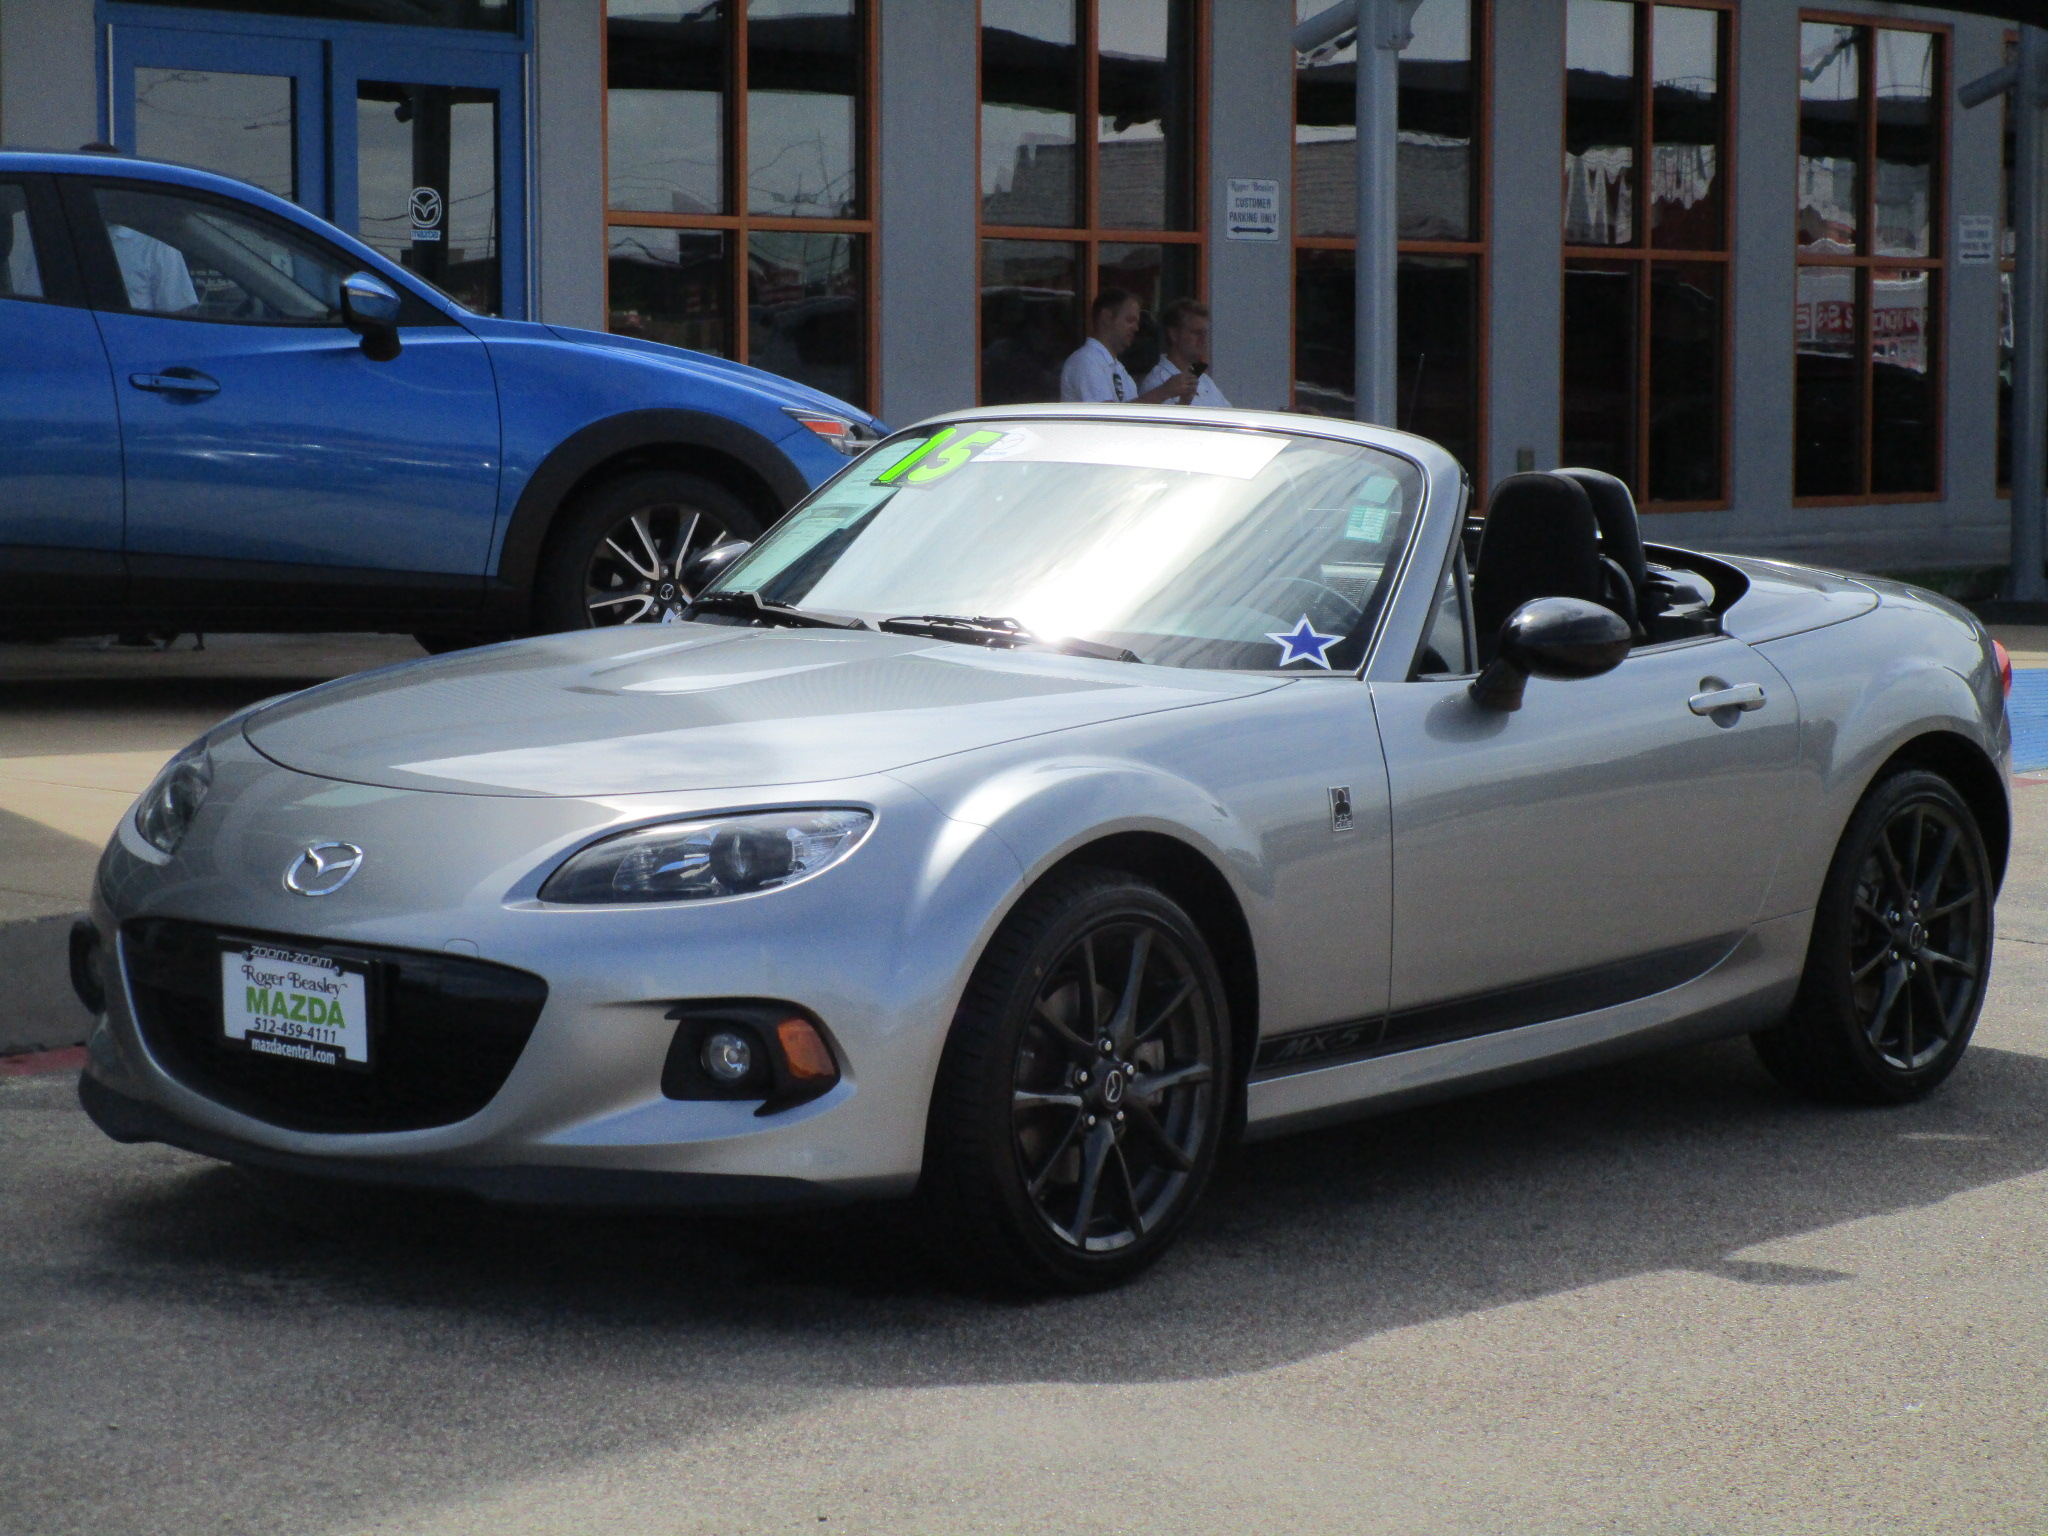 New And Used Mazda Mx 5 Miata For Sale The Car Connection Used Mazda MX-5 Miata For Sale in Austin, TX - The Car Connection